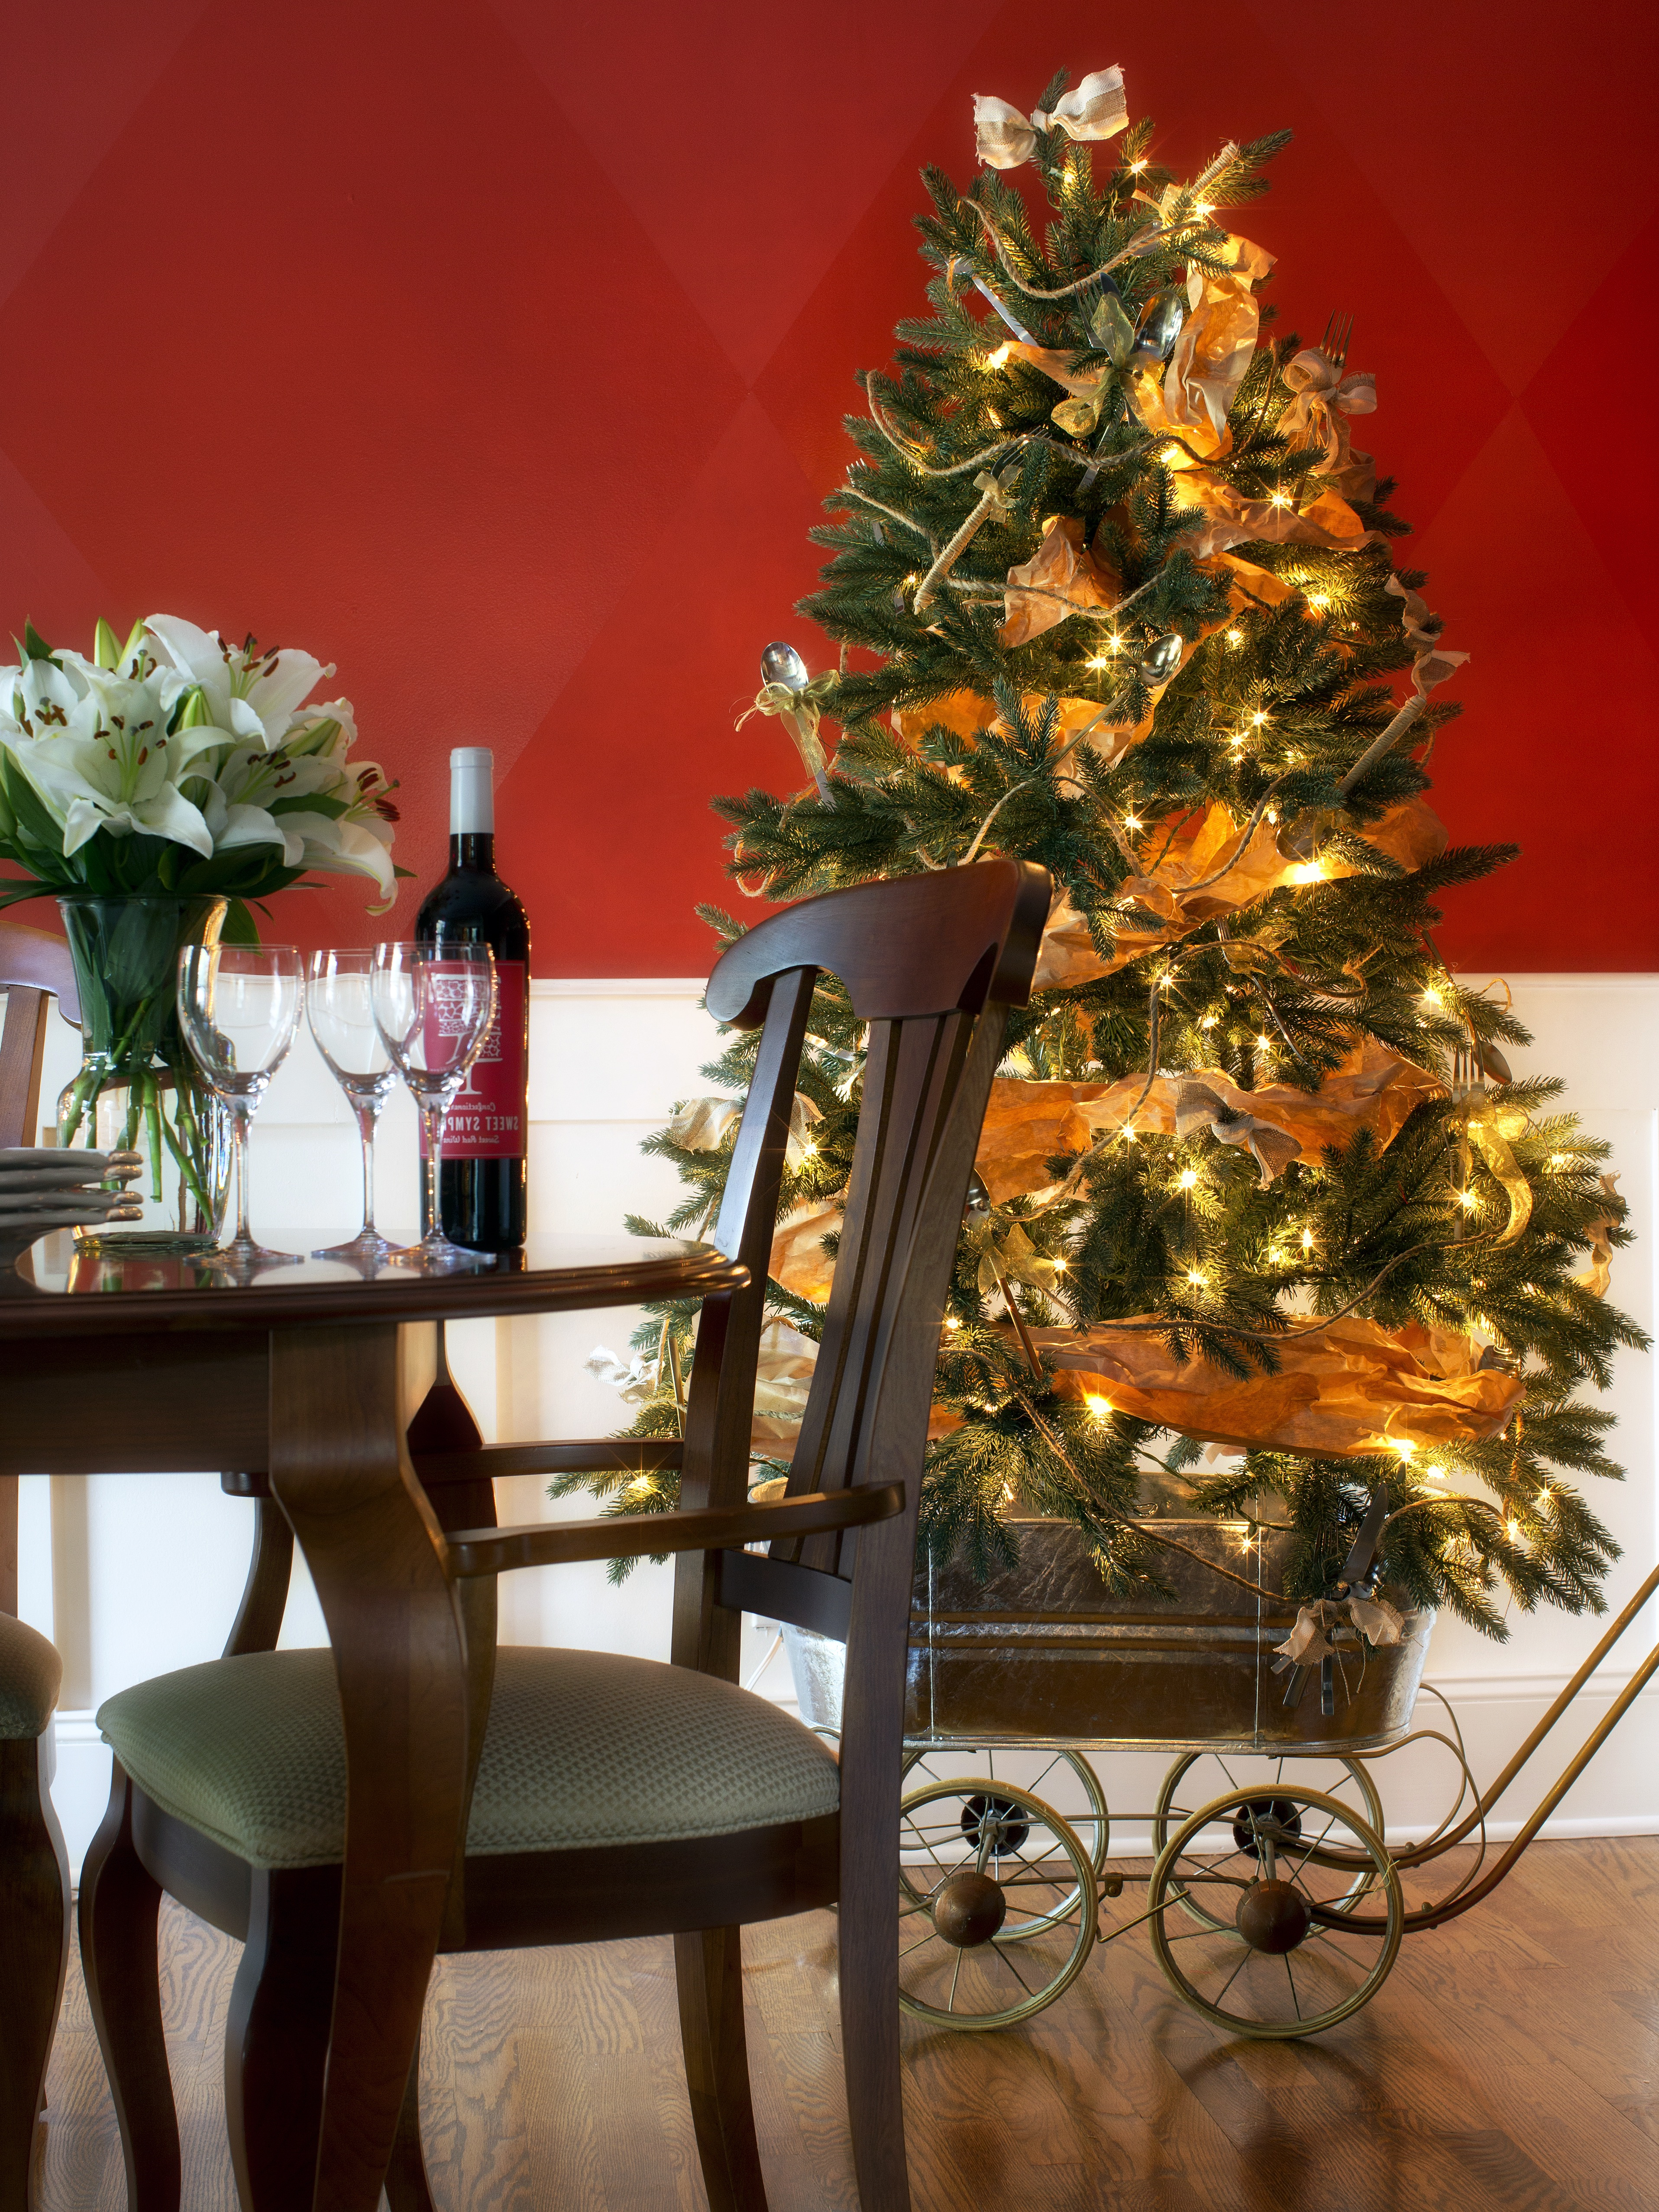 Modern Dining Room Christmas Decoration (Image 23 of 32)